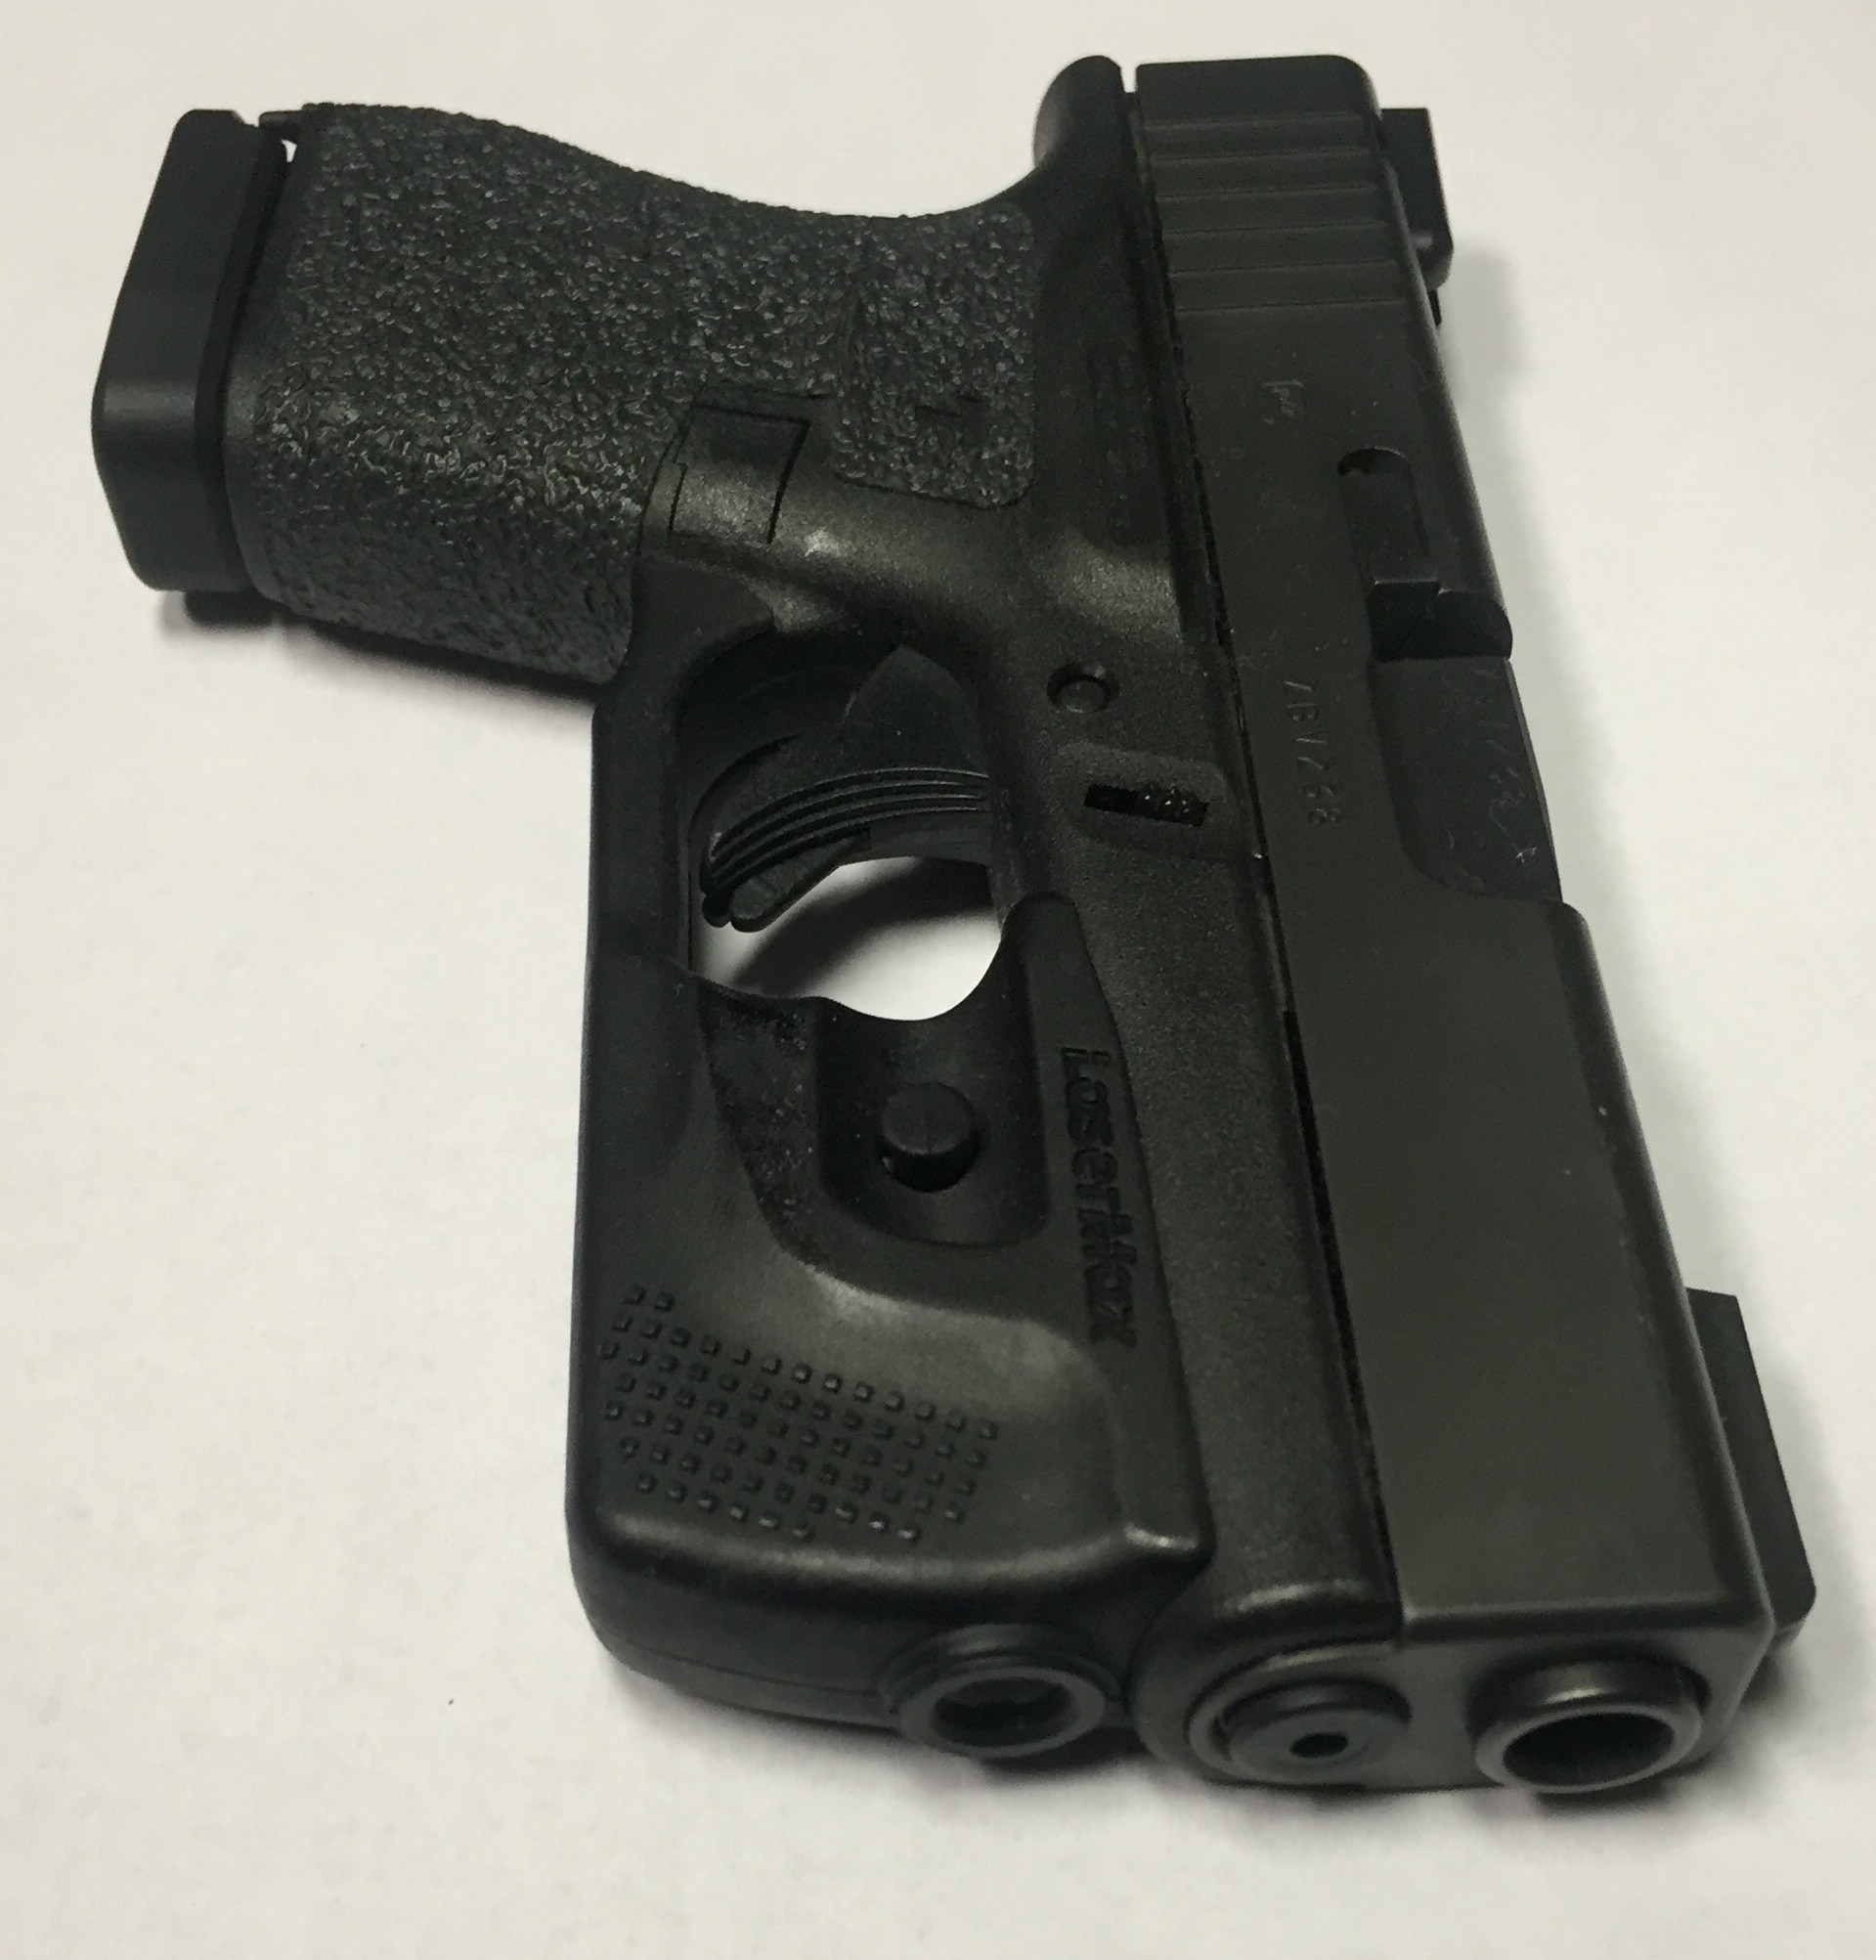 Glock 43 LaserMax Light